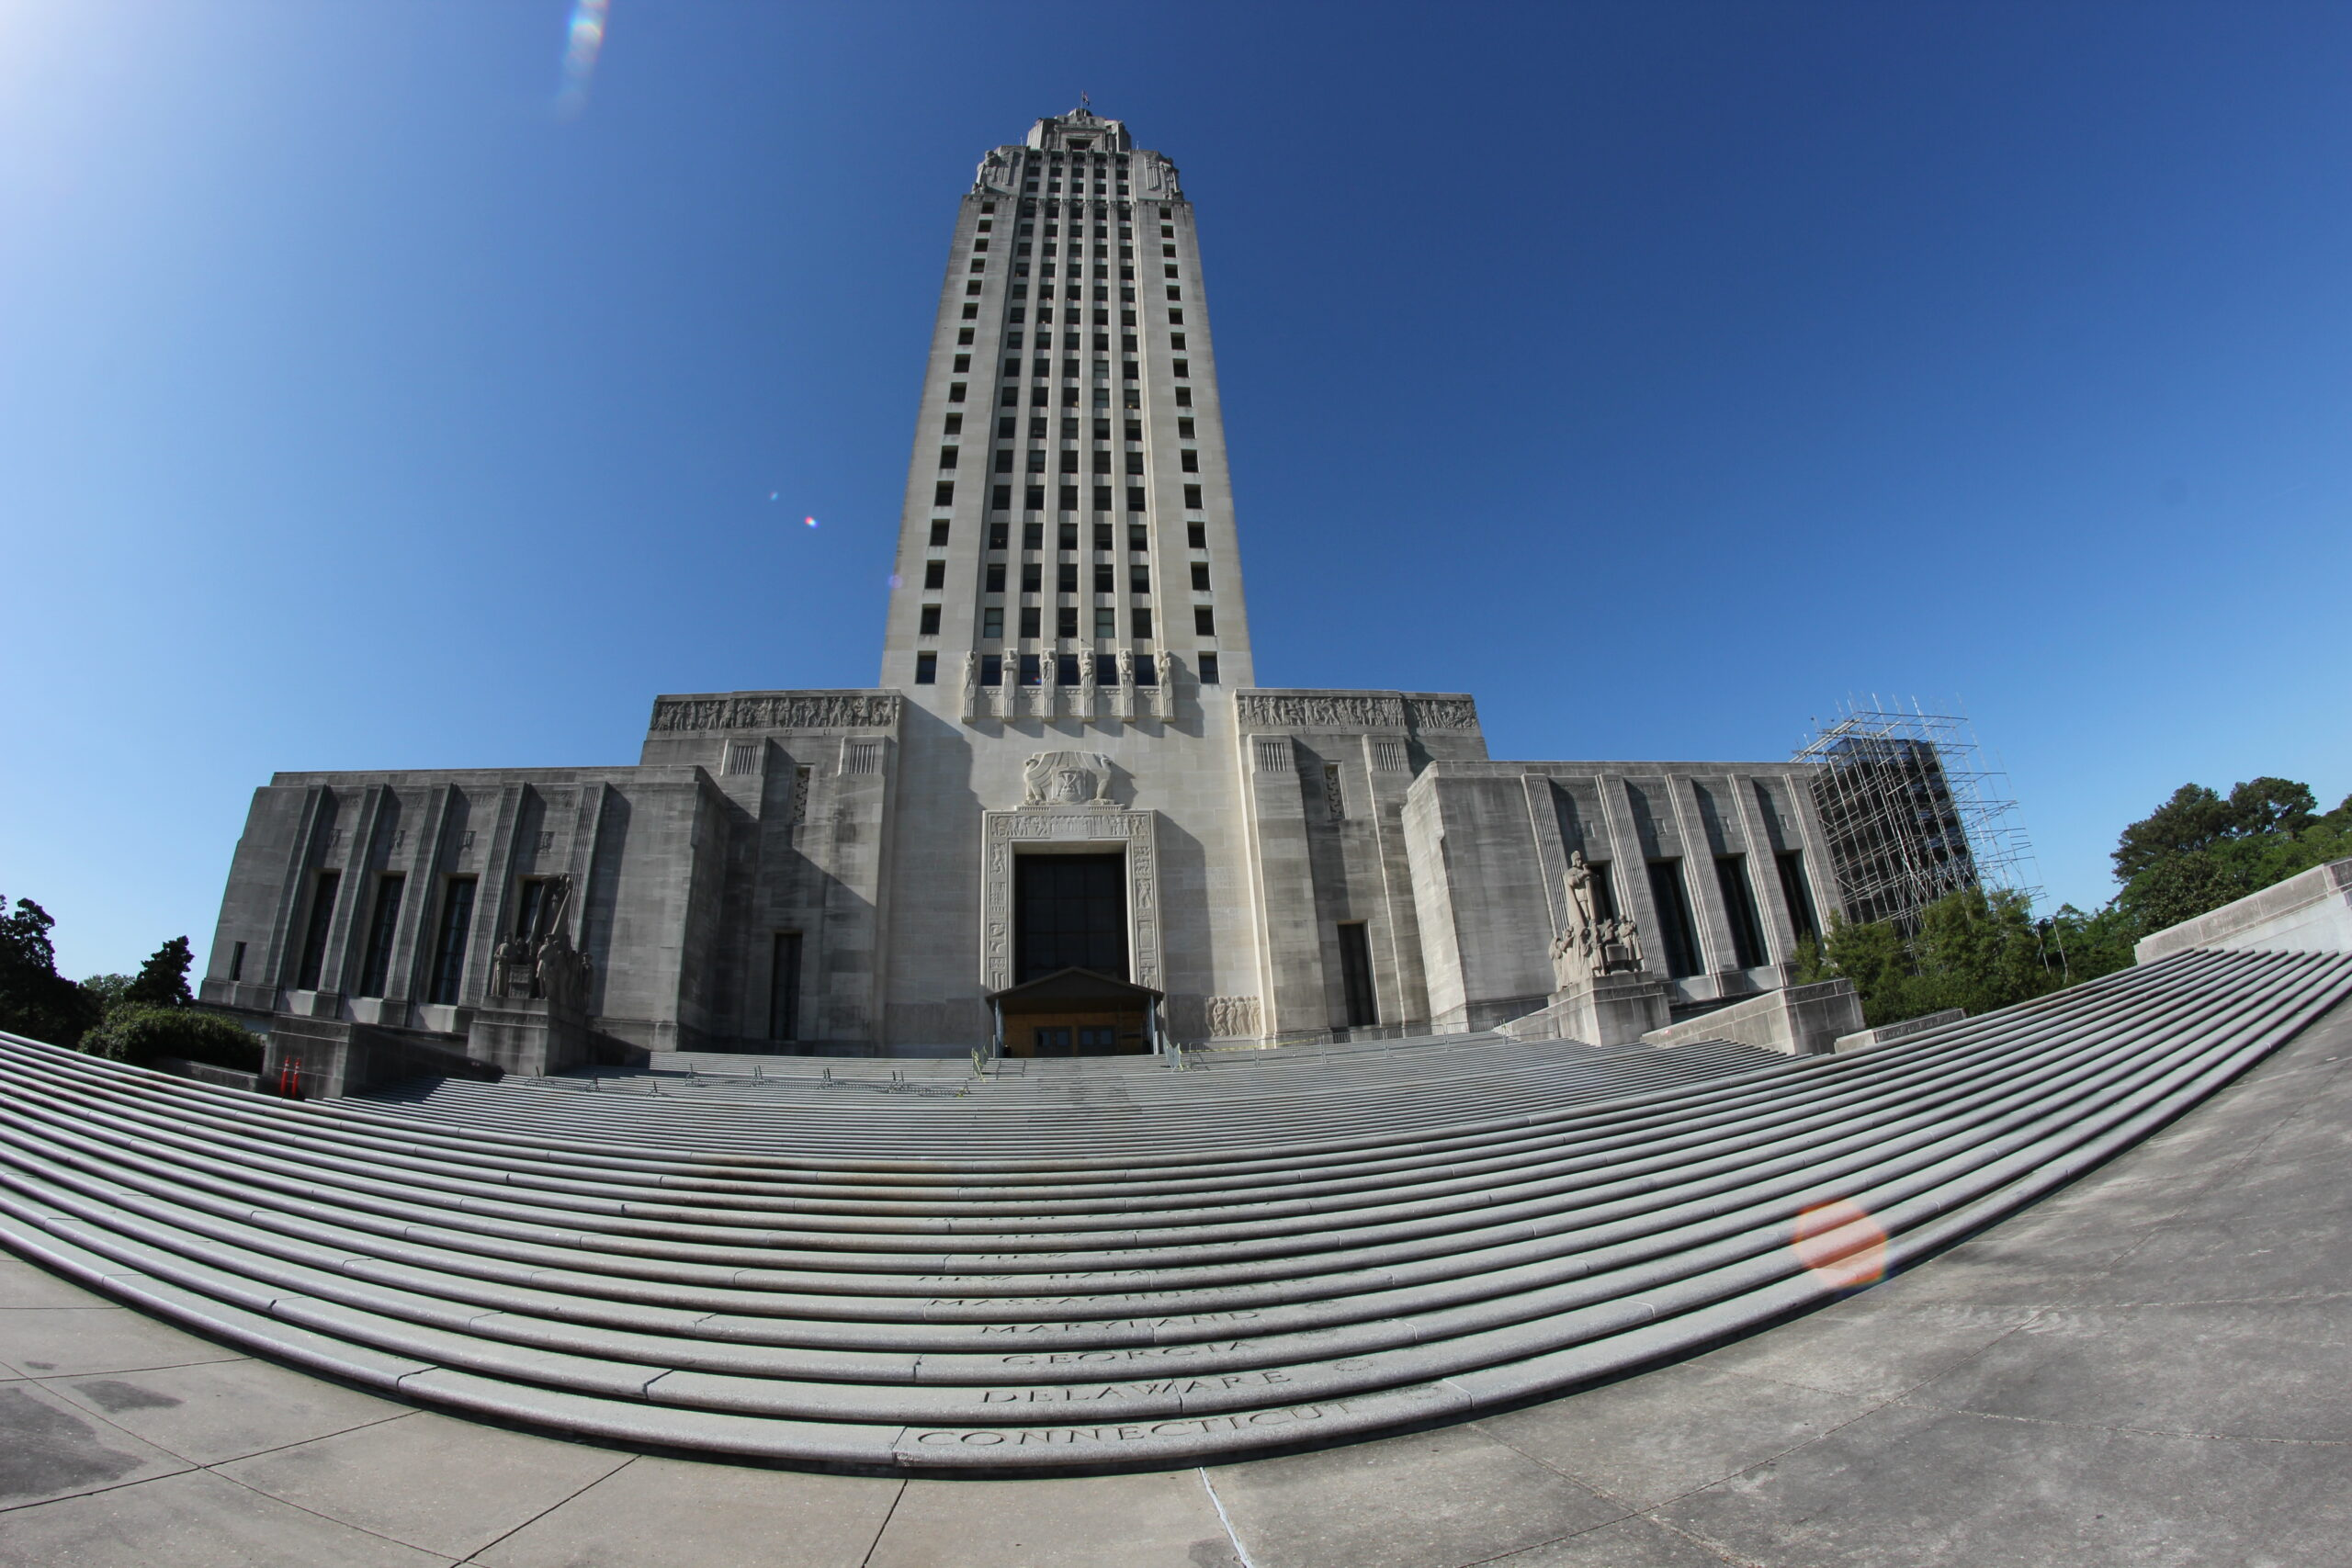 Louisiana bill takes lenient approach to employers who misclassify workers